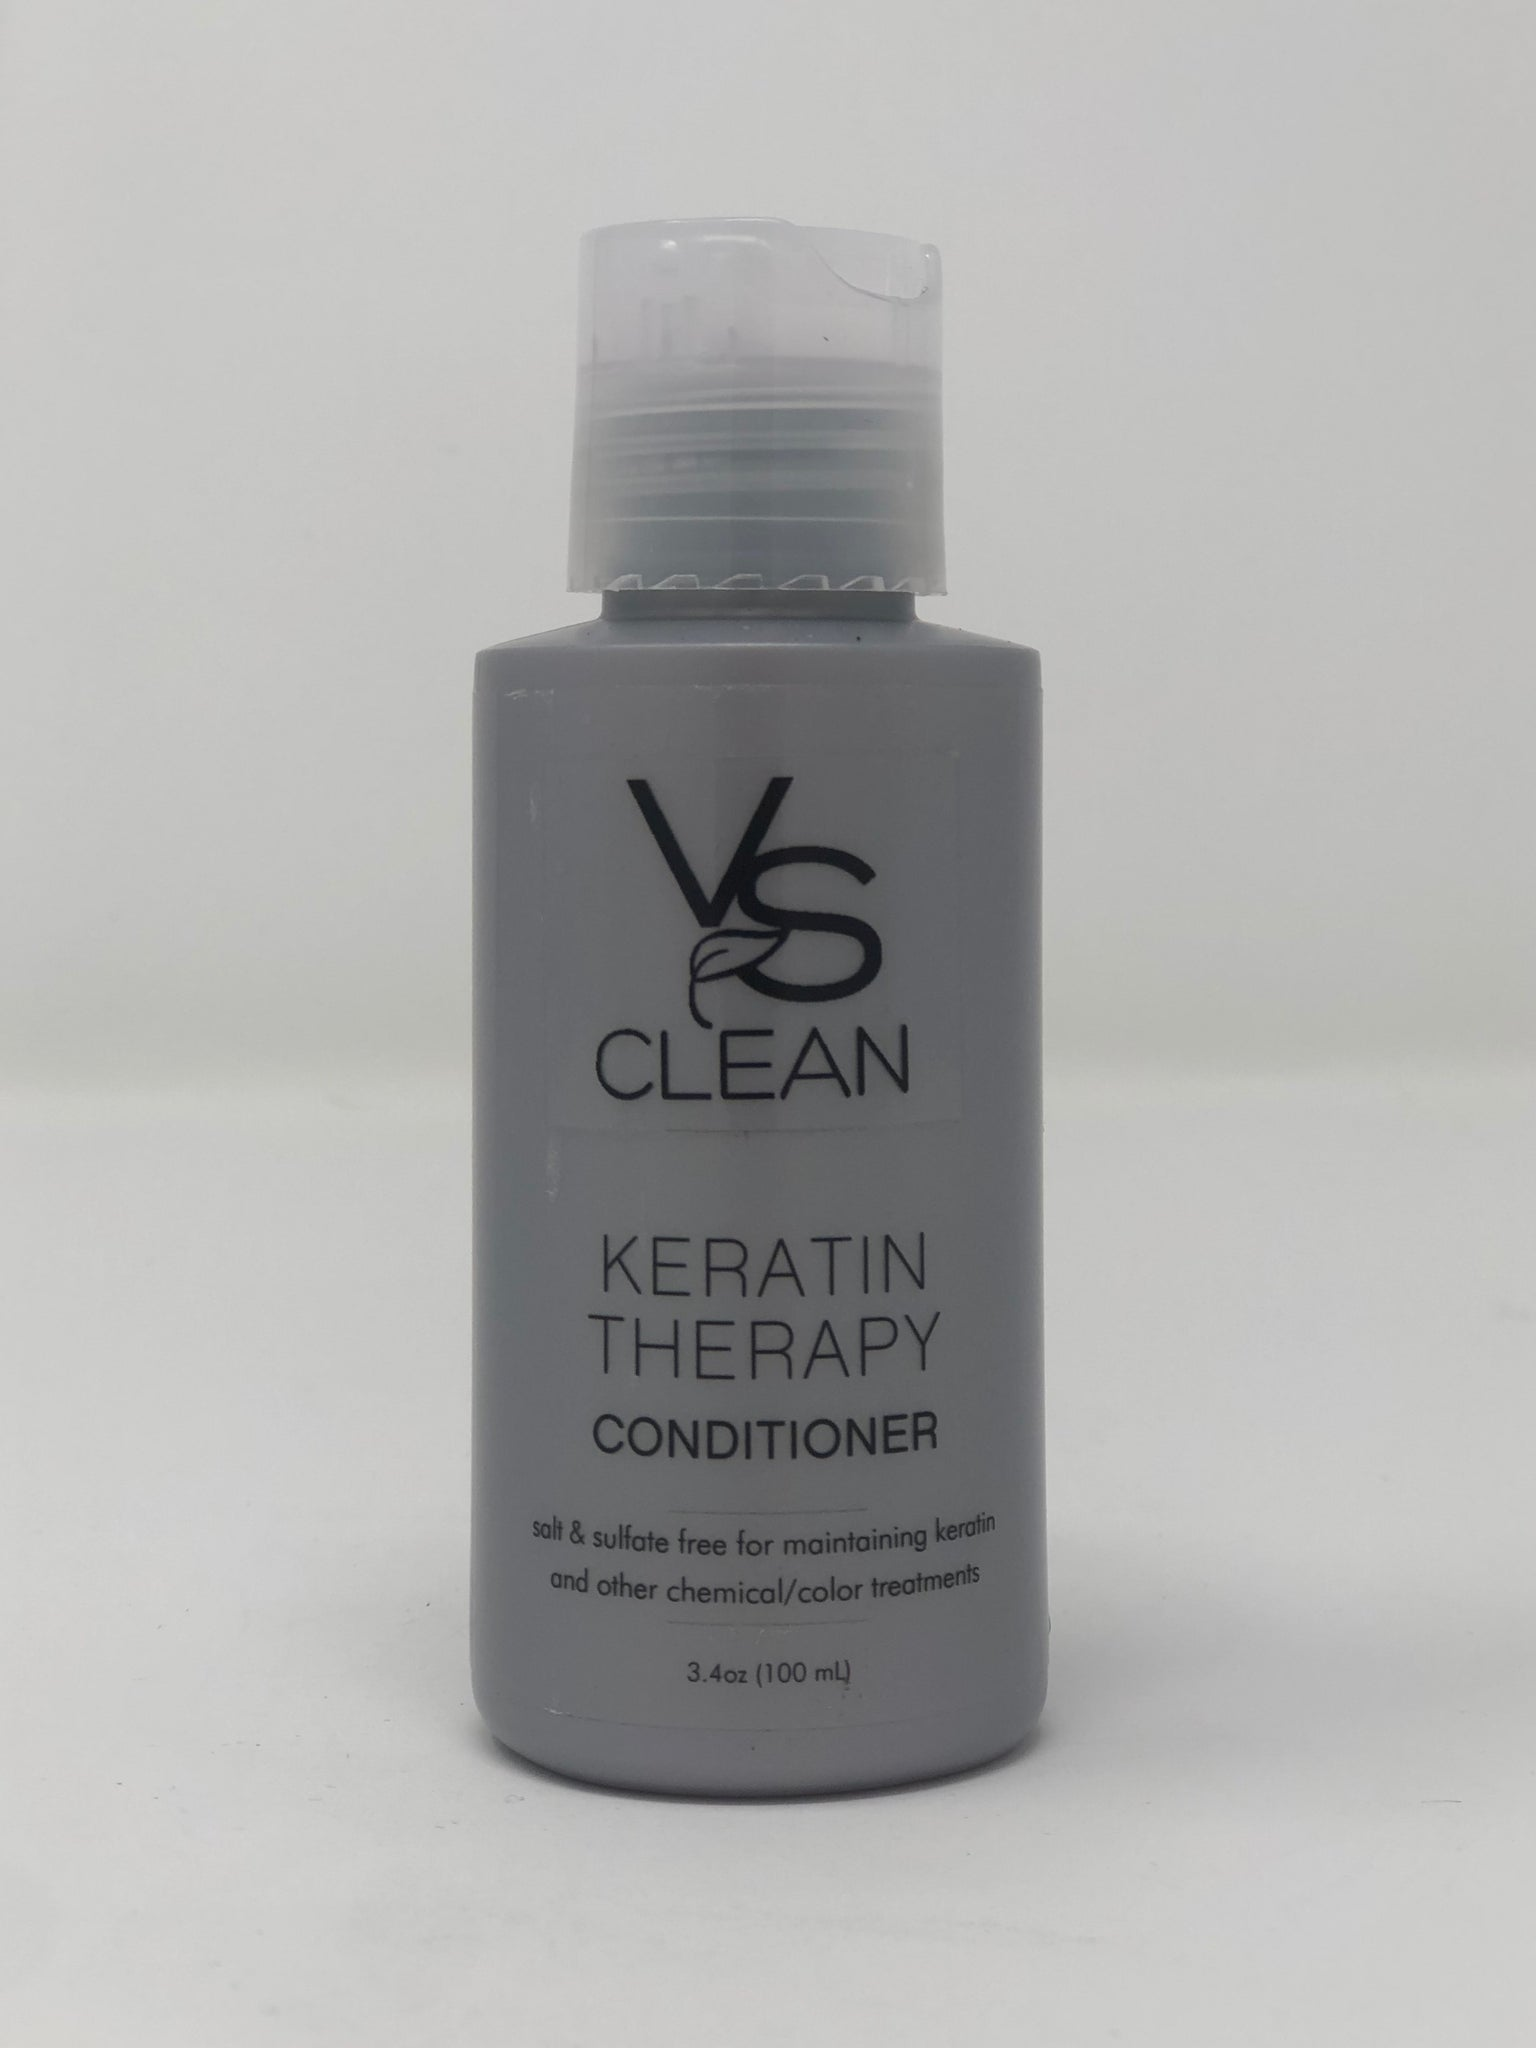 KERATIN THERAPY CONDITIONER